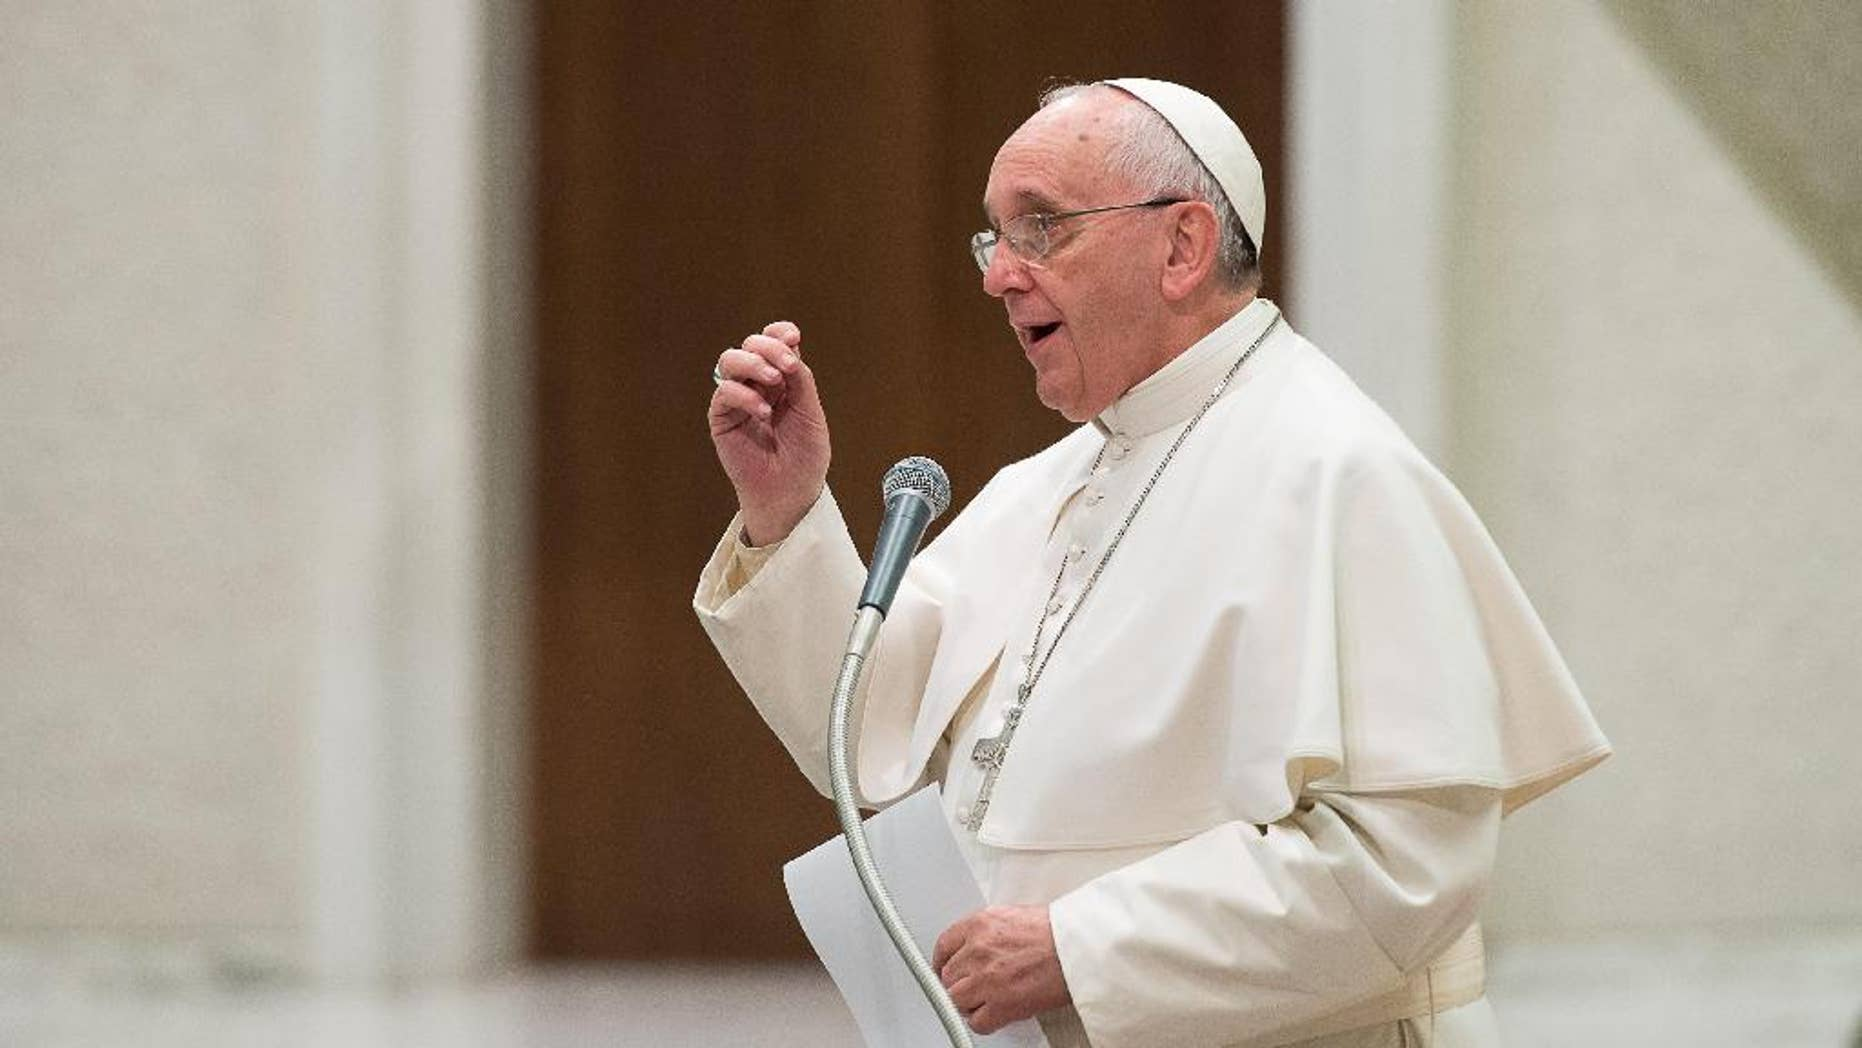 Pope Francis delivers his message on the occasion of an audience granted to members of the Italian Confcooperative, cooperative associations, in the Paul VI hall at the Vatican, Saturday, Feb. 28, 2015. (AP Photo/L'Osservatore Romano, Pool)